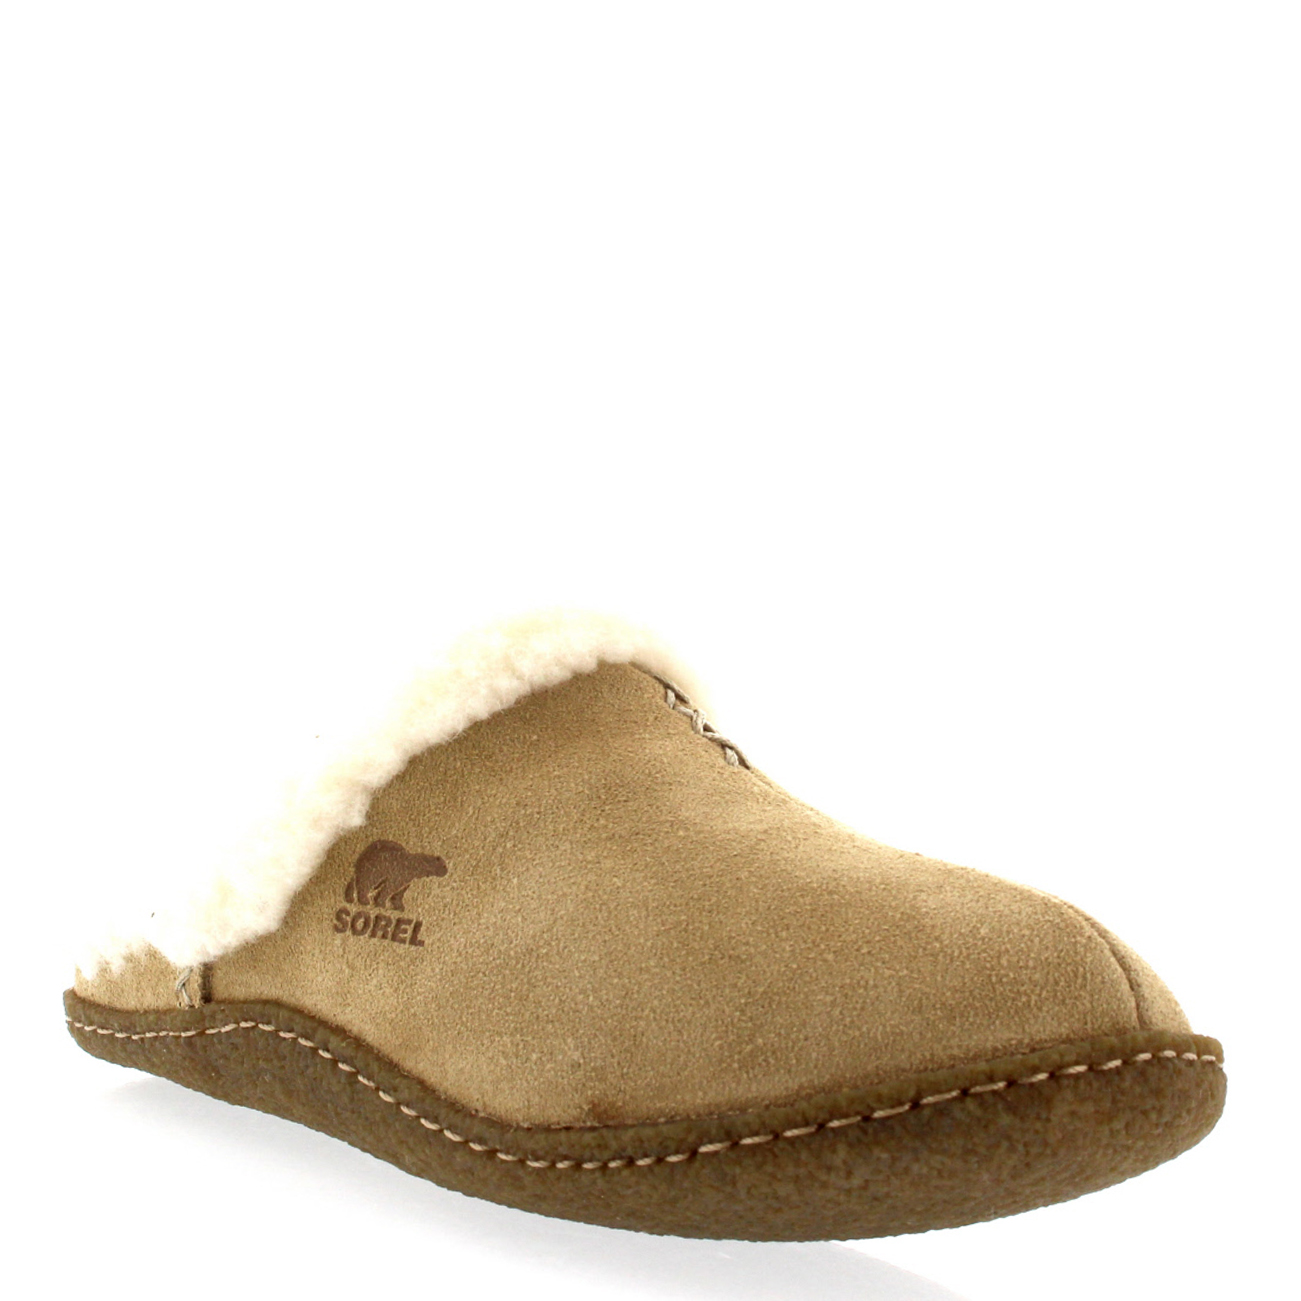 Womens Fur Lined House Shoes